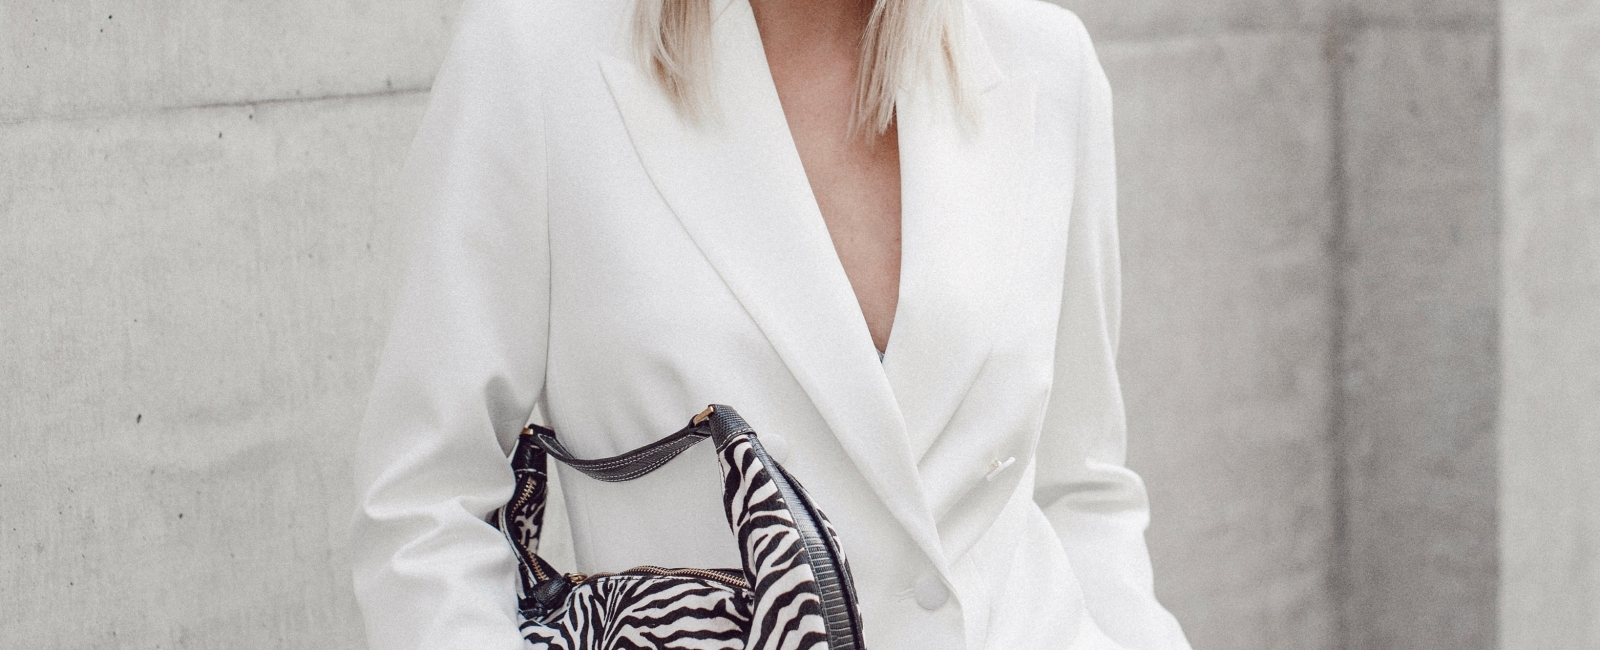 MOD-by-Monique-Fashion-Looks-SS2020-Zebra-Staud-2